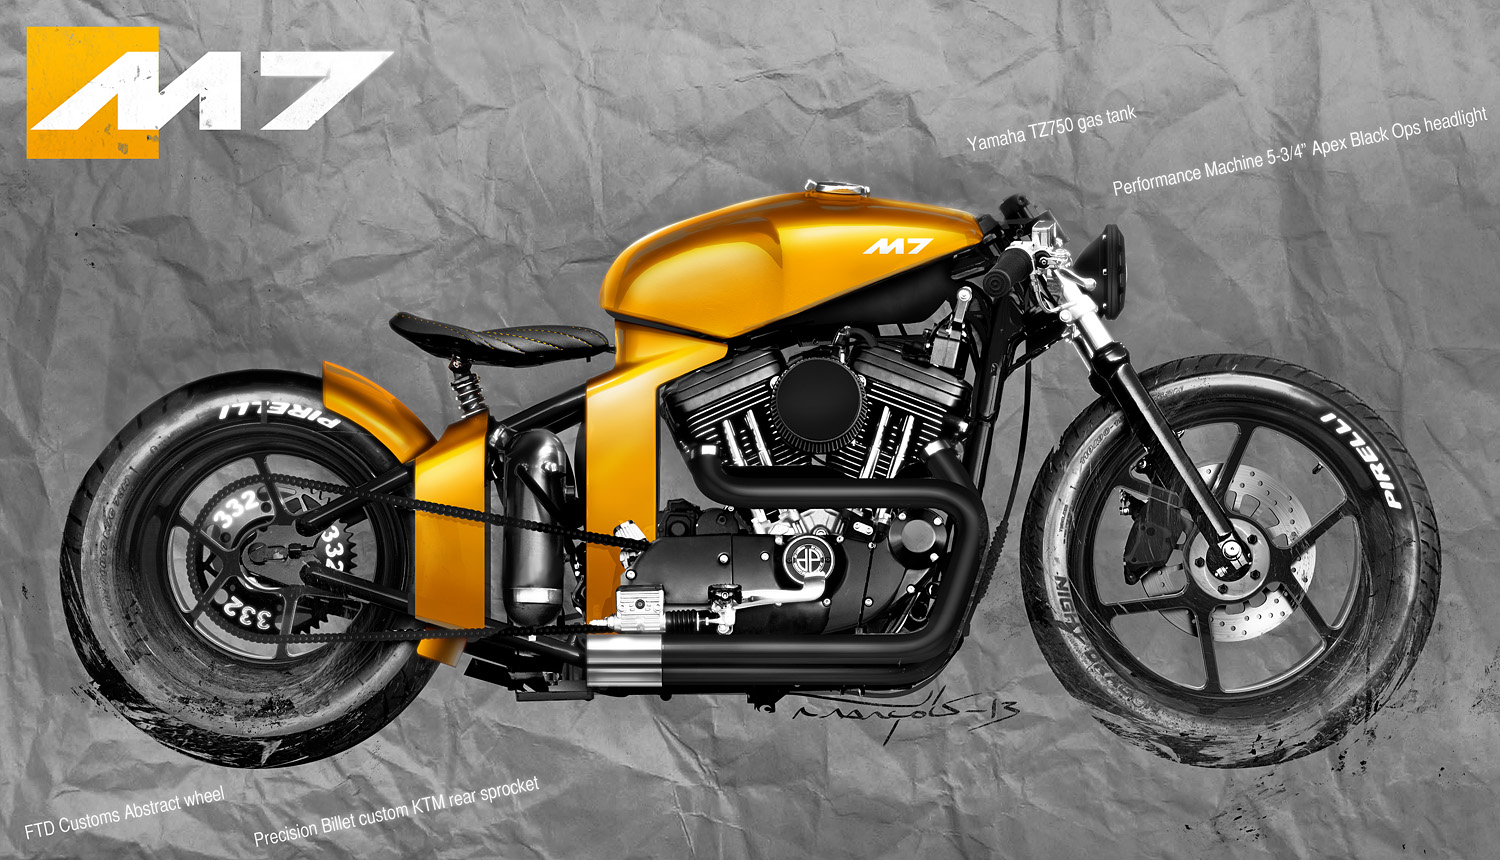 motorcycle design on - photo #35